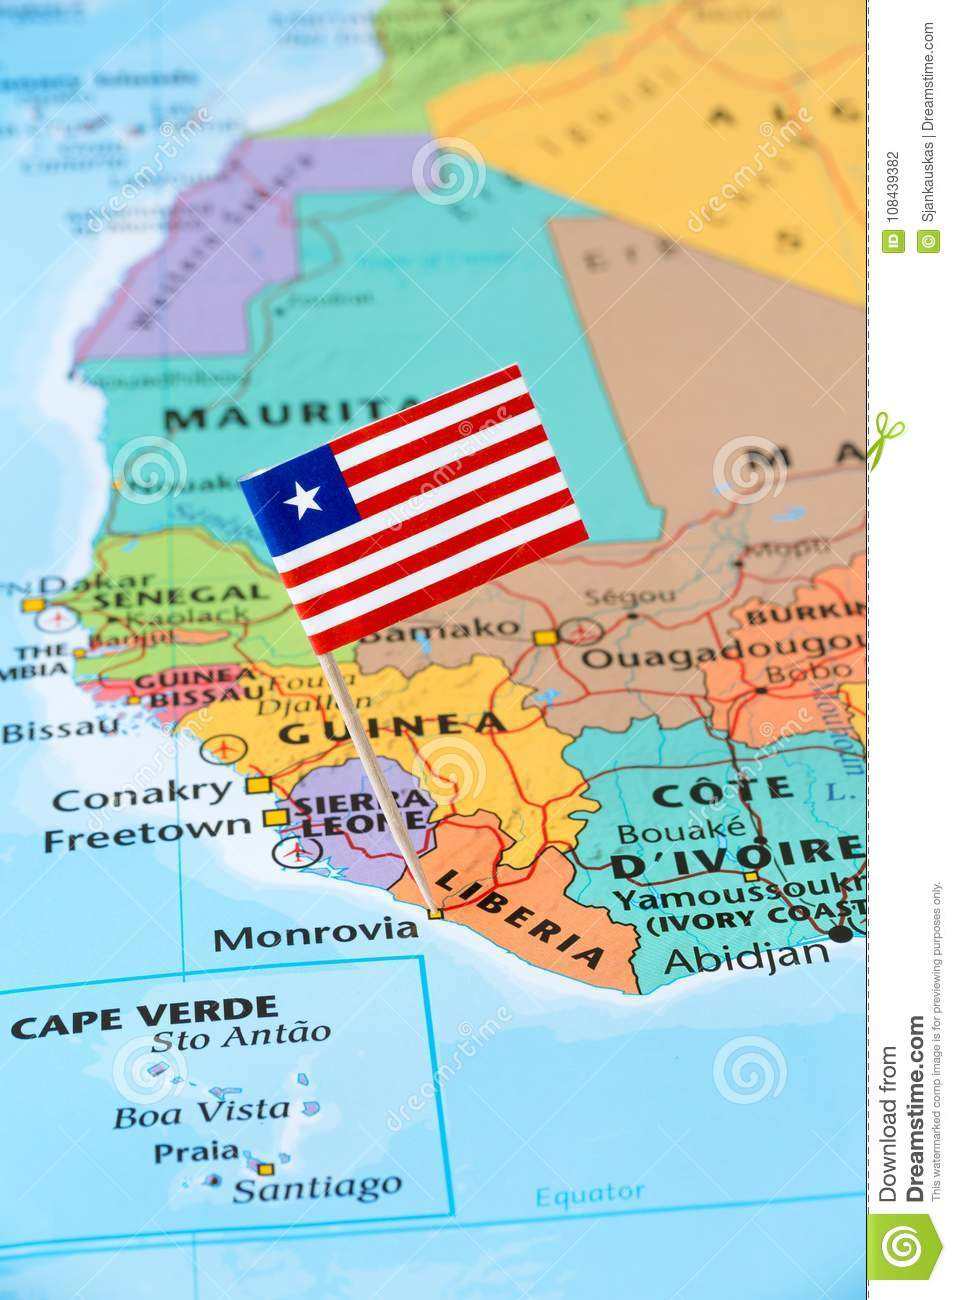 Liberia On Africa Map.Liberia Flag Pin On A World Map Stock Photo Image Of Business